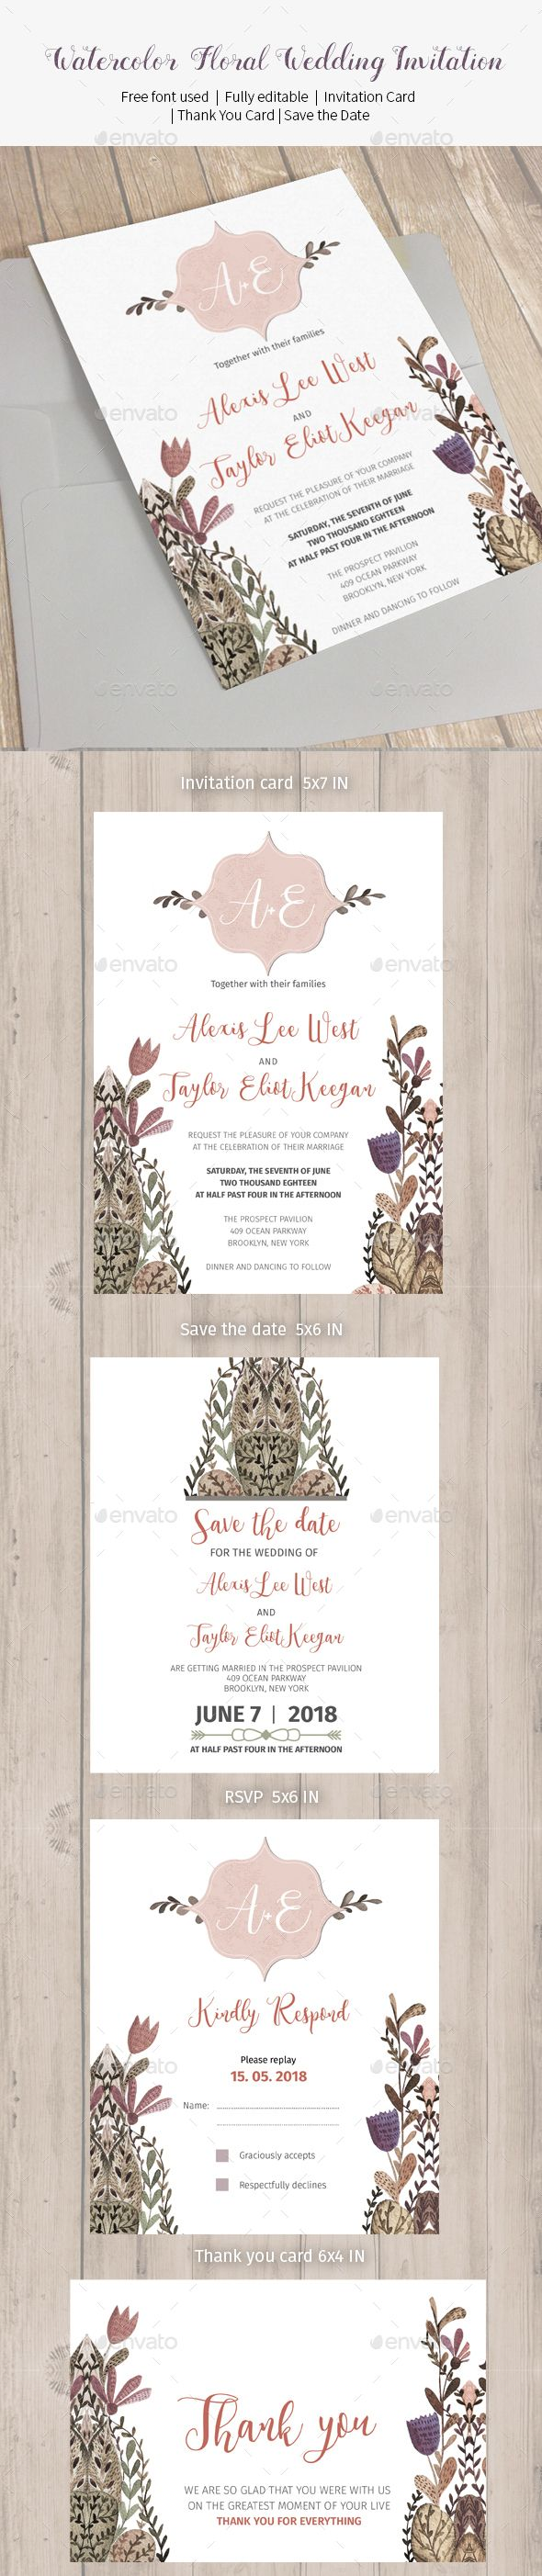 wedding invitation templates wedding invitation software Watercolor Floral Wedding Invitation